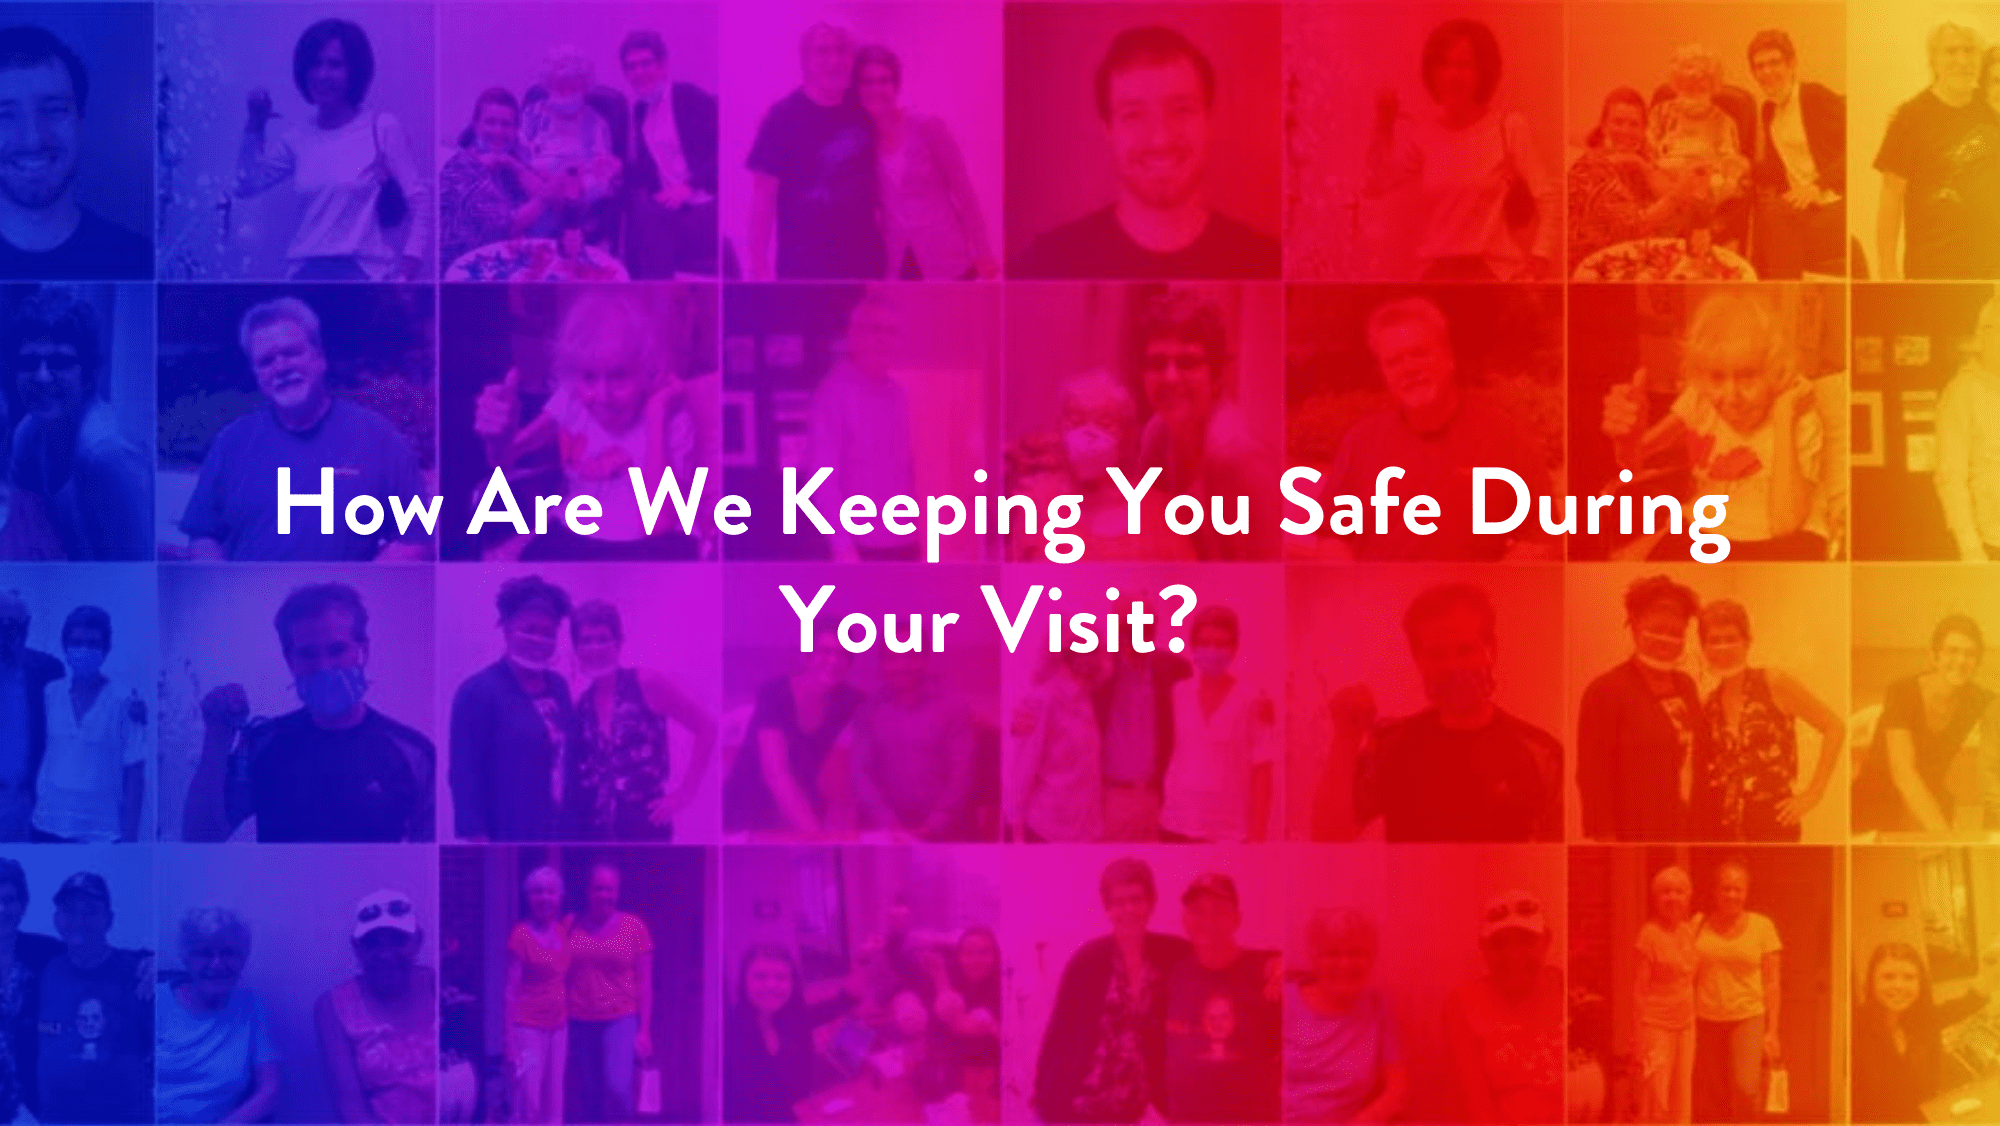 How Are We Keeping You Safe During Your Visit?